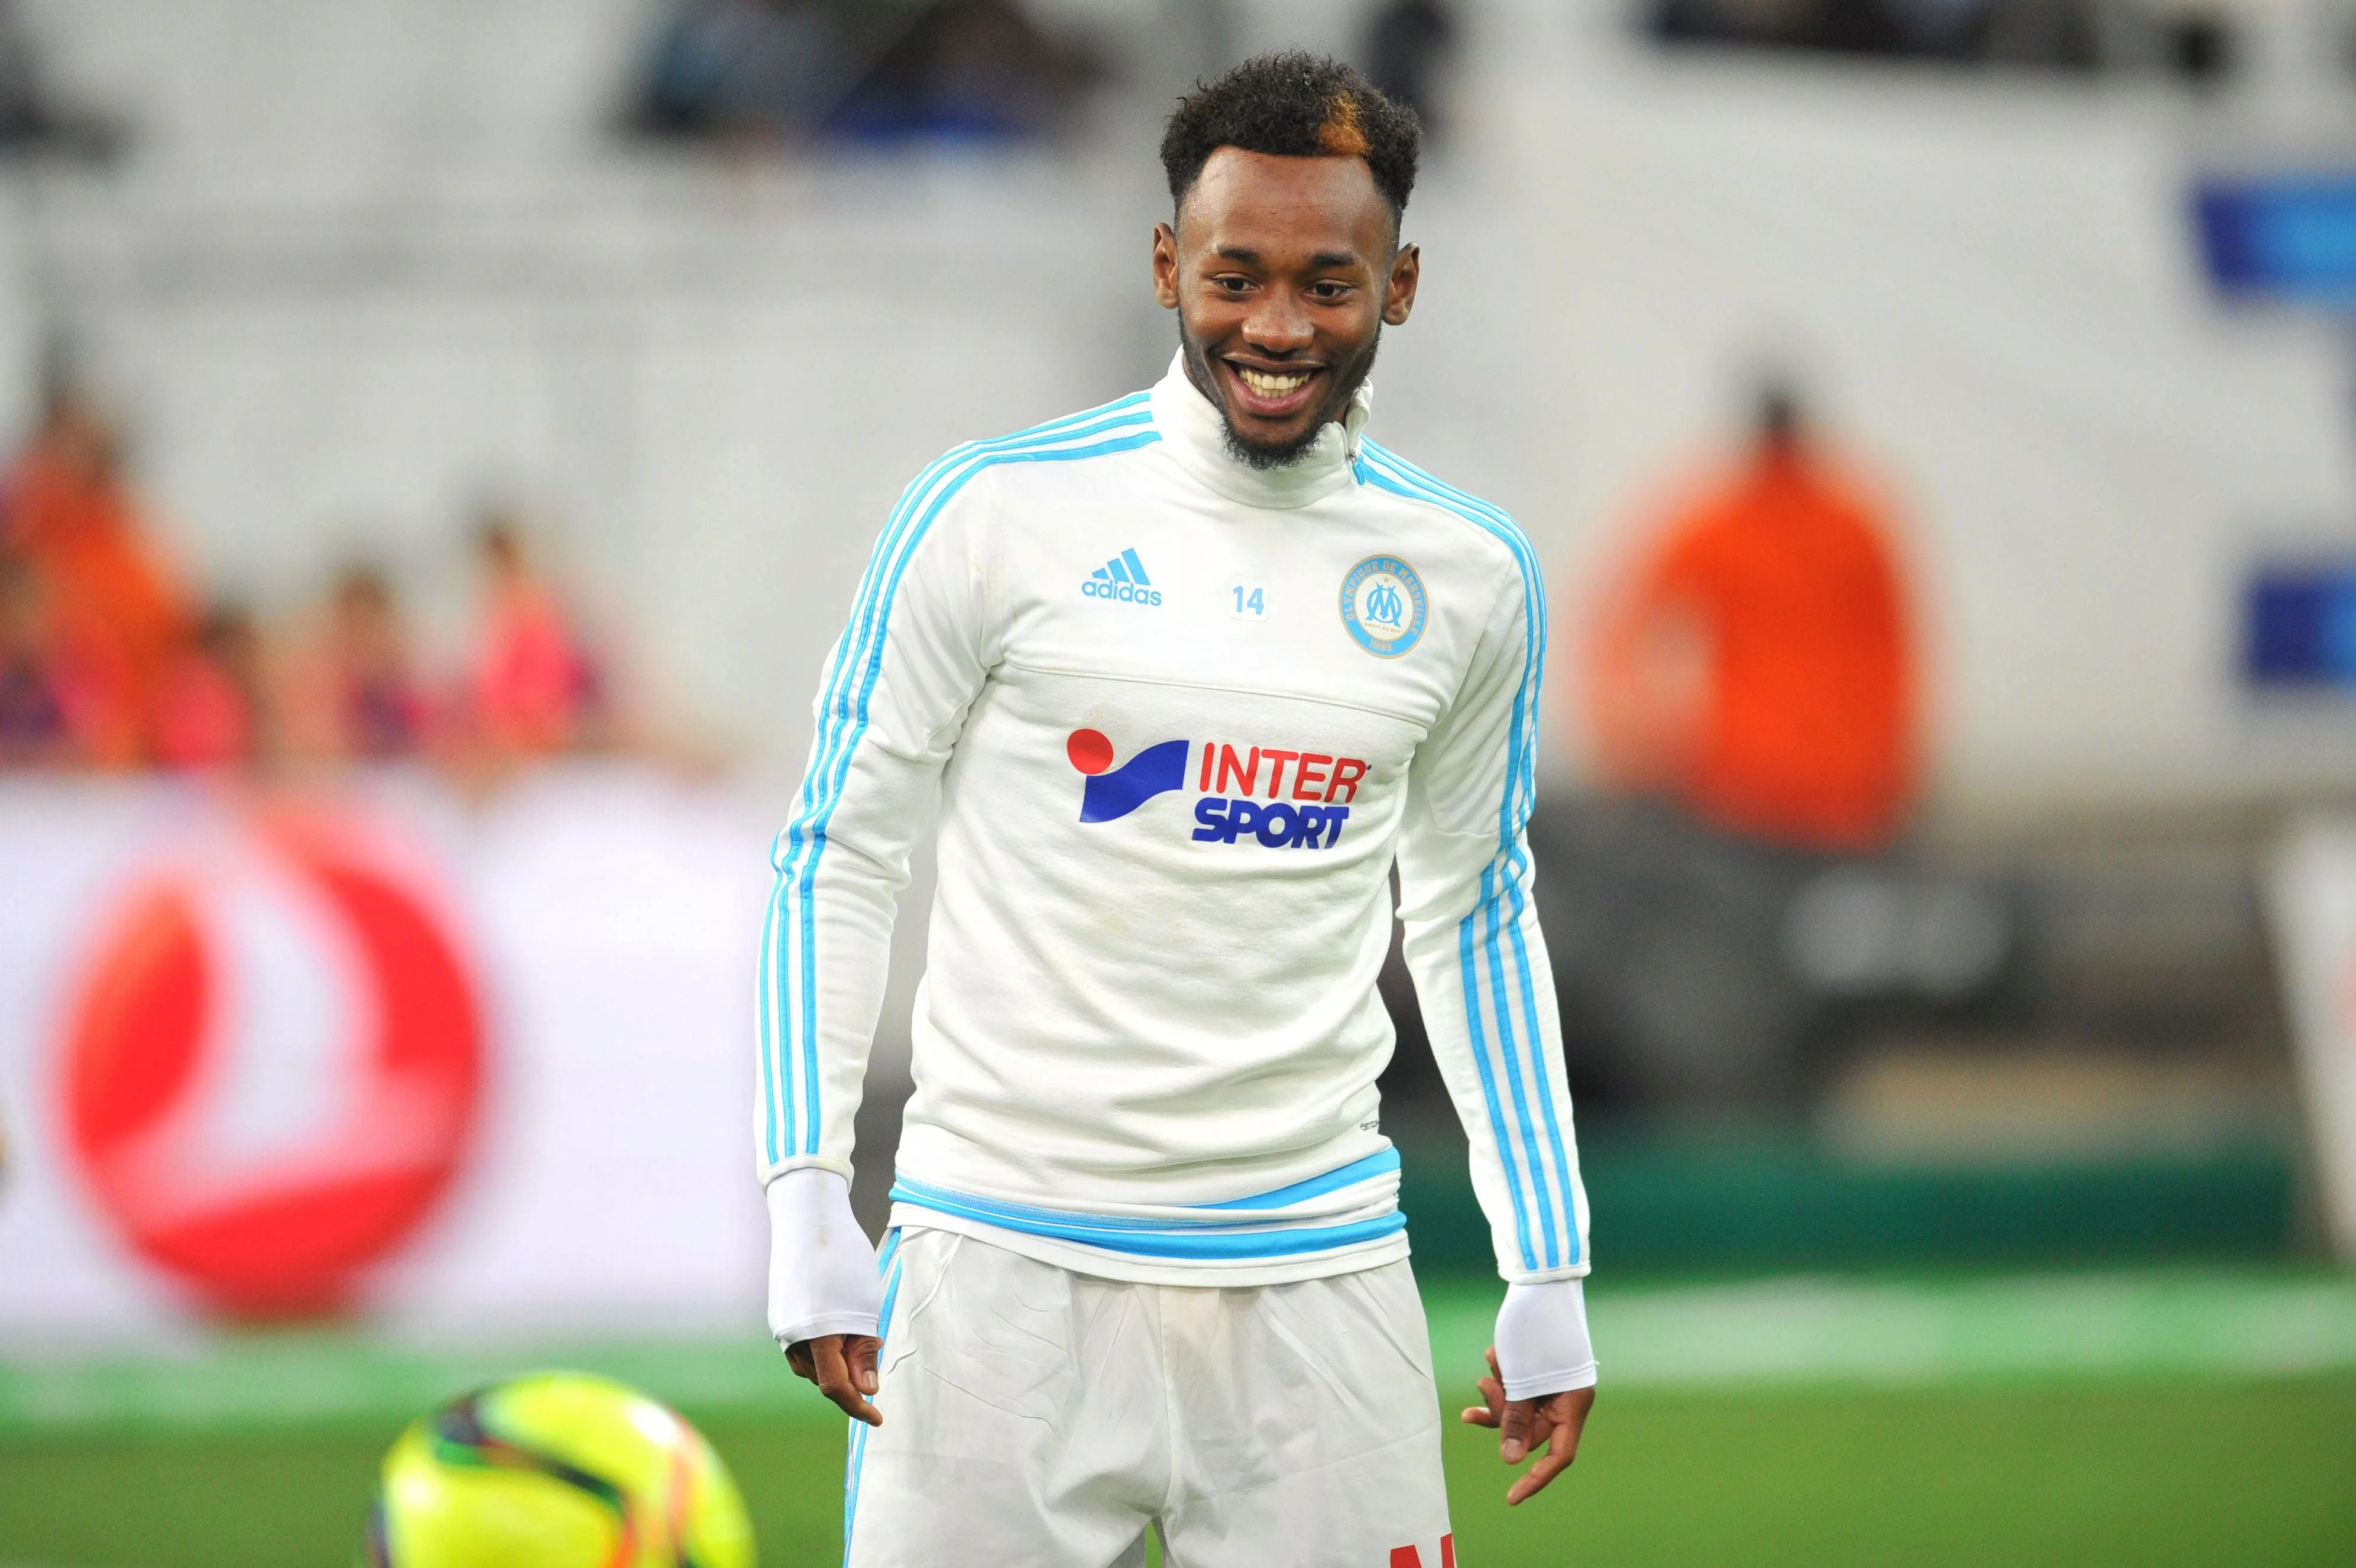 Image result for georges kevin nkoudou HD